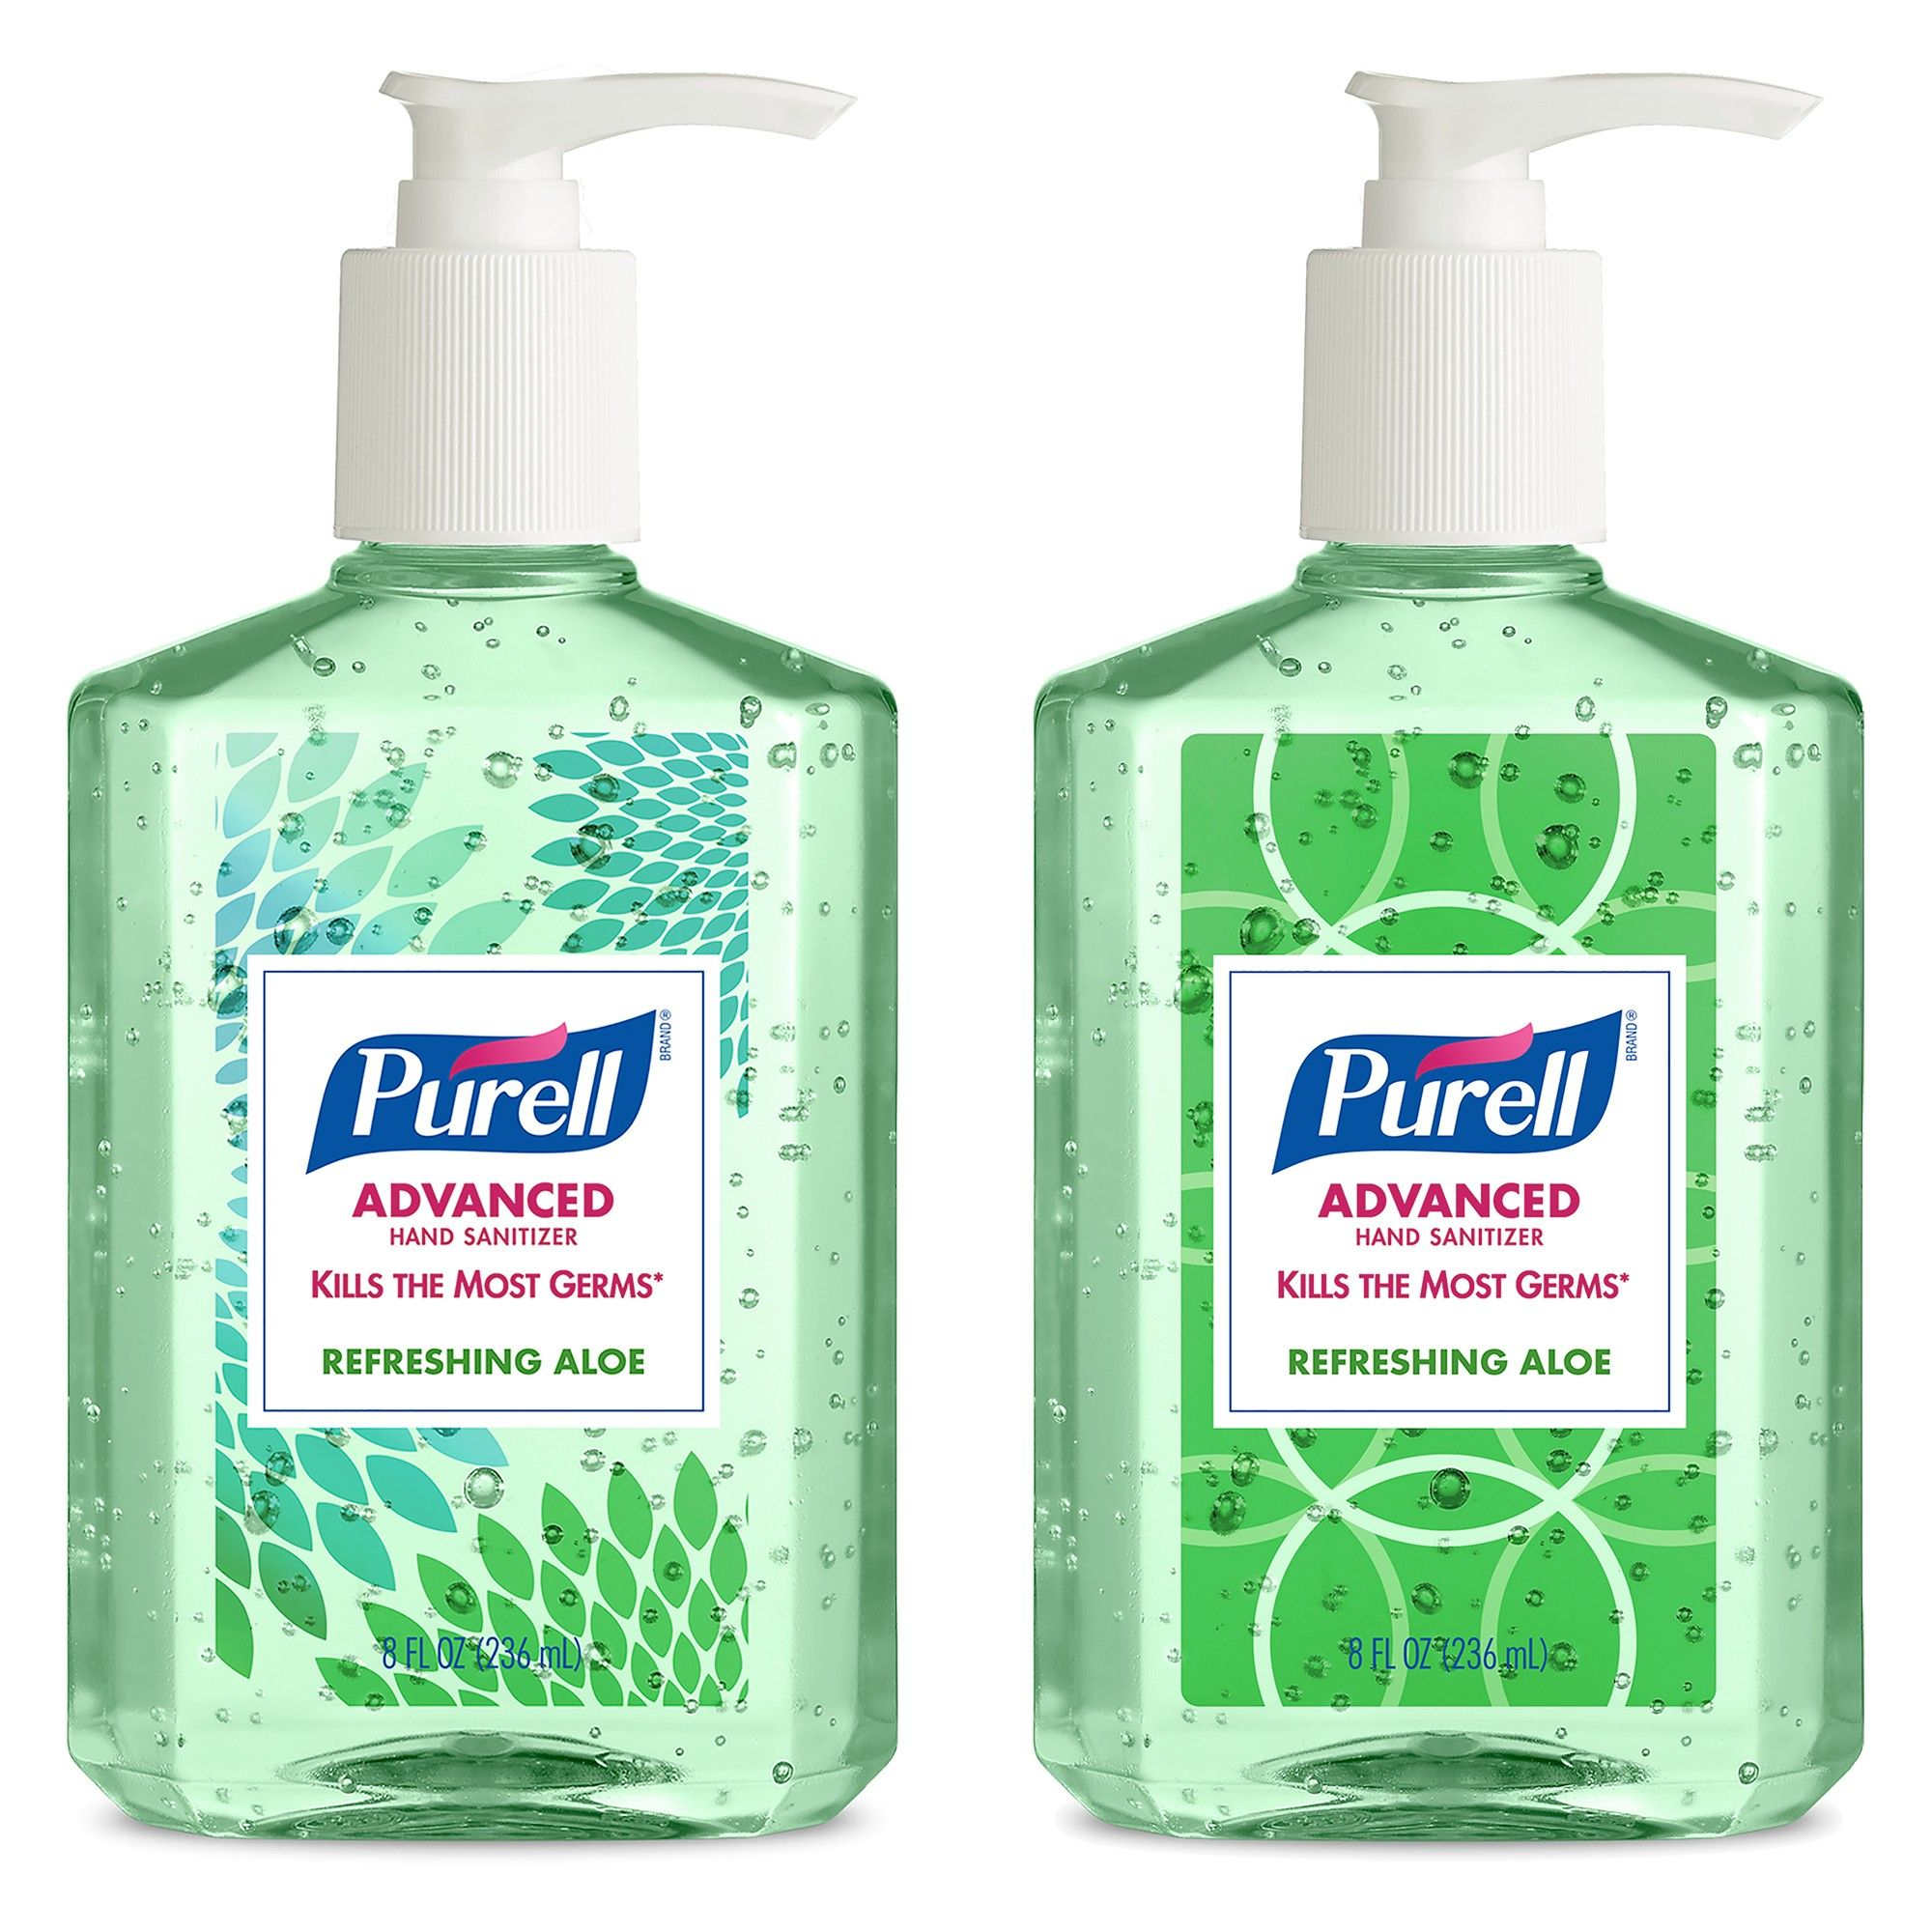 Purell Refreshing Aloe Advanced Hand Sanitizer 8 Fl Oz Best